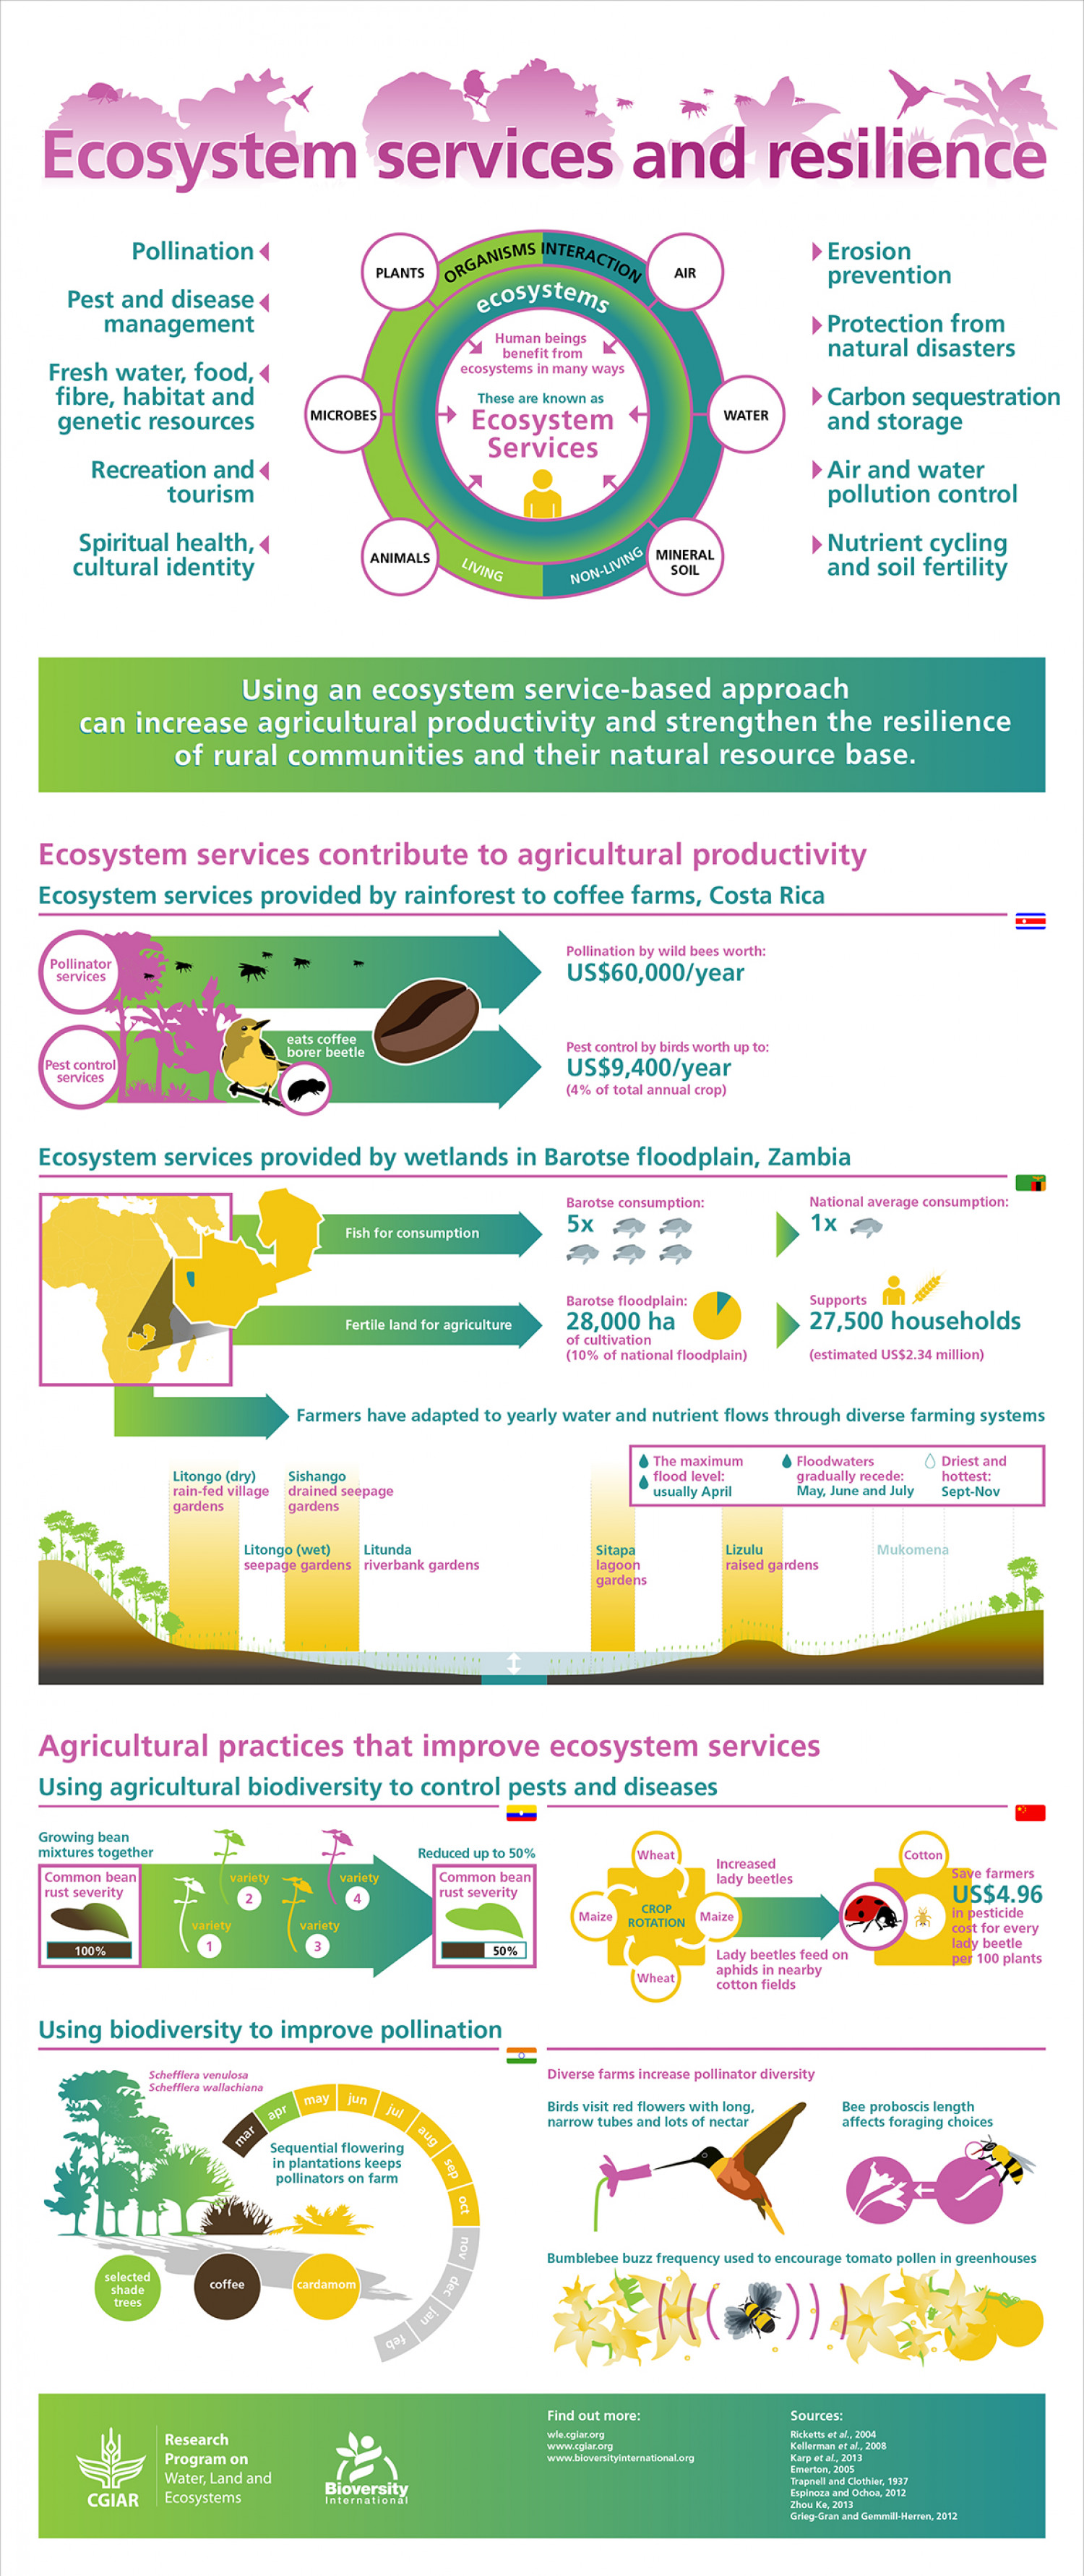 Free Worksheets agriculture worksheets for high school : Ecosystem Services and Resilience : Visual.ly